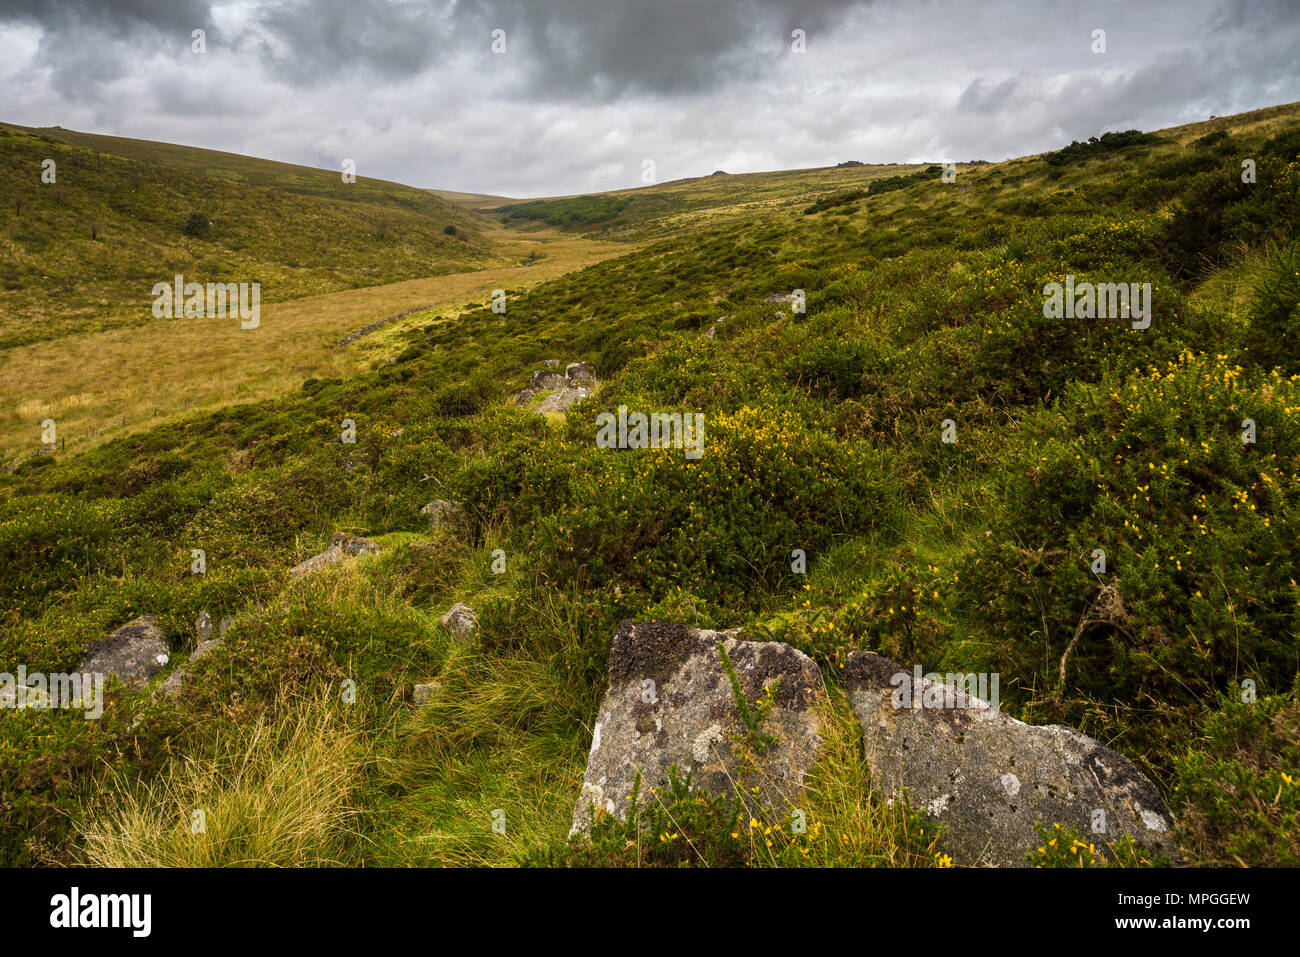 The Dart Valley north of Two Bridges leading to Wistmans Wood, a Site of Special Scientific Interest in Dartmoor National Park, Devon, England. - Stock Image